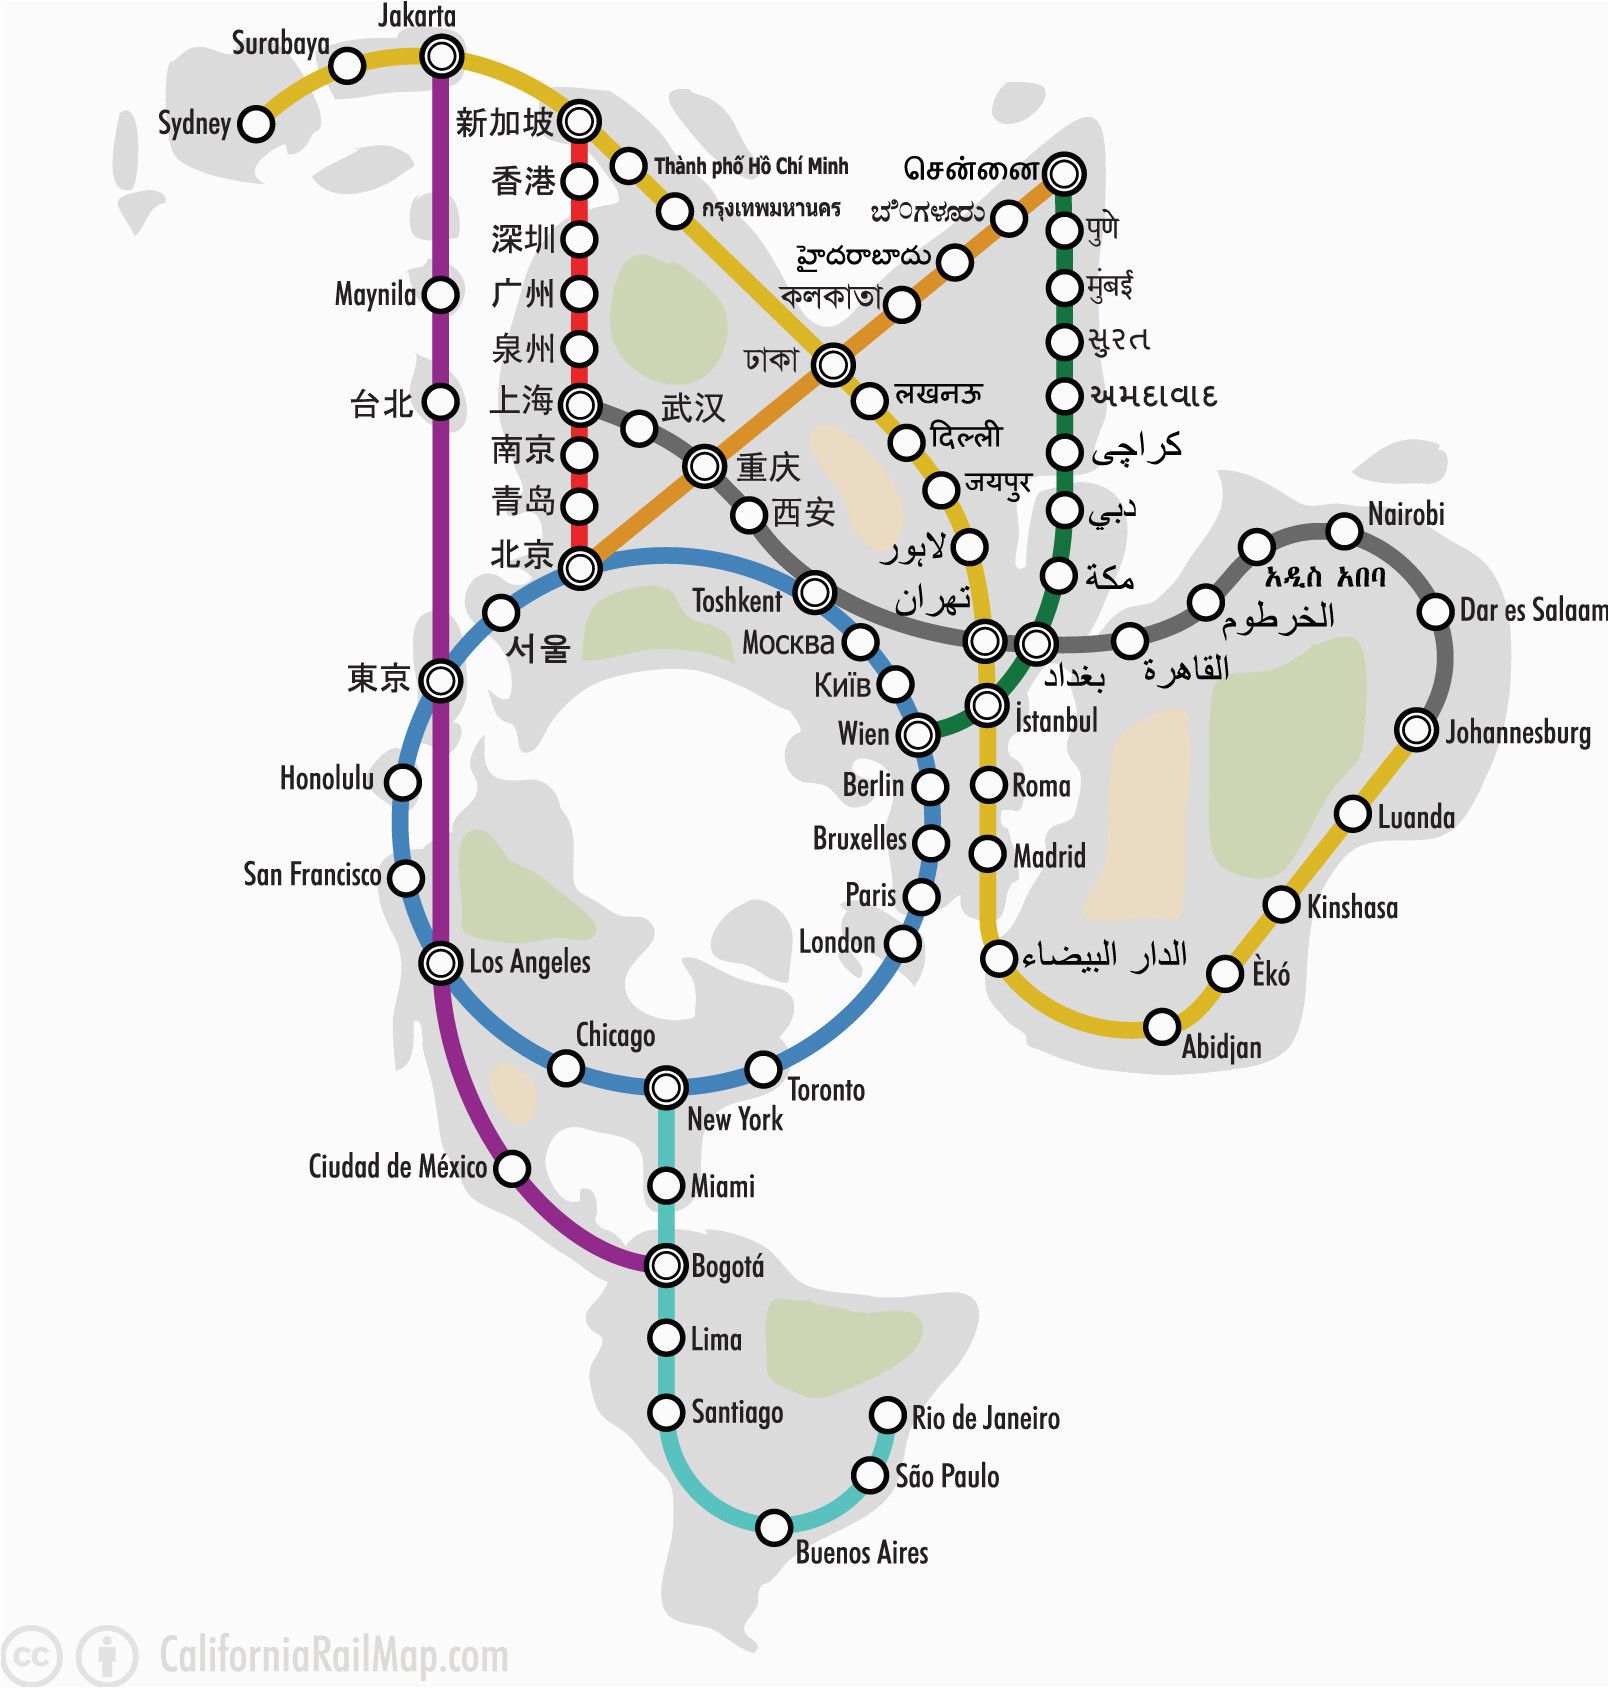 E Subway Map.Map Of Route 66 From Chicago To California Map Of Route 66 From